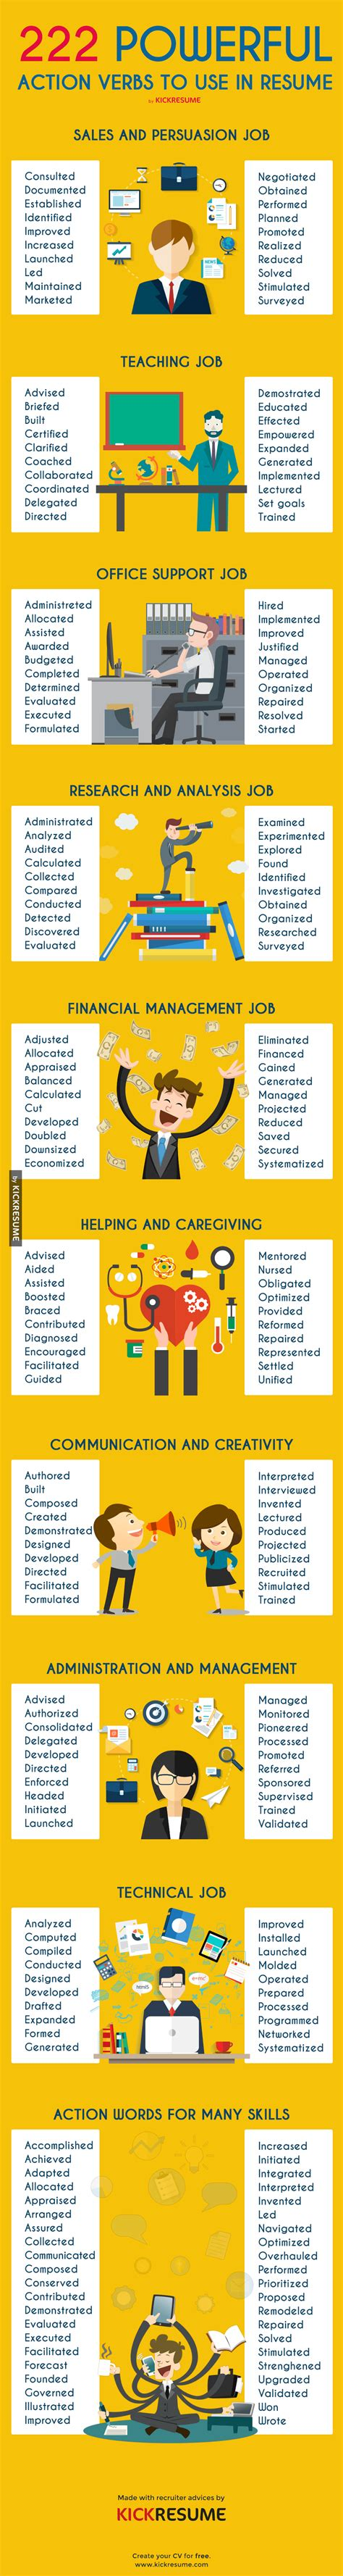 222 powerful verbs to use in your resume tfe times